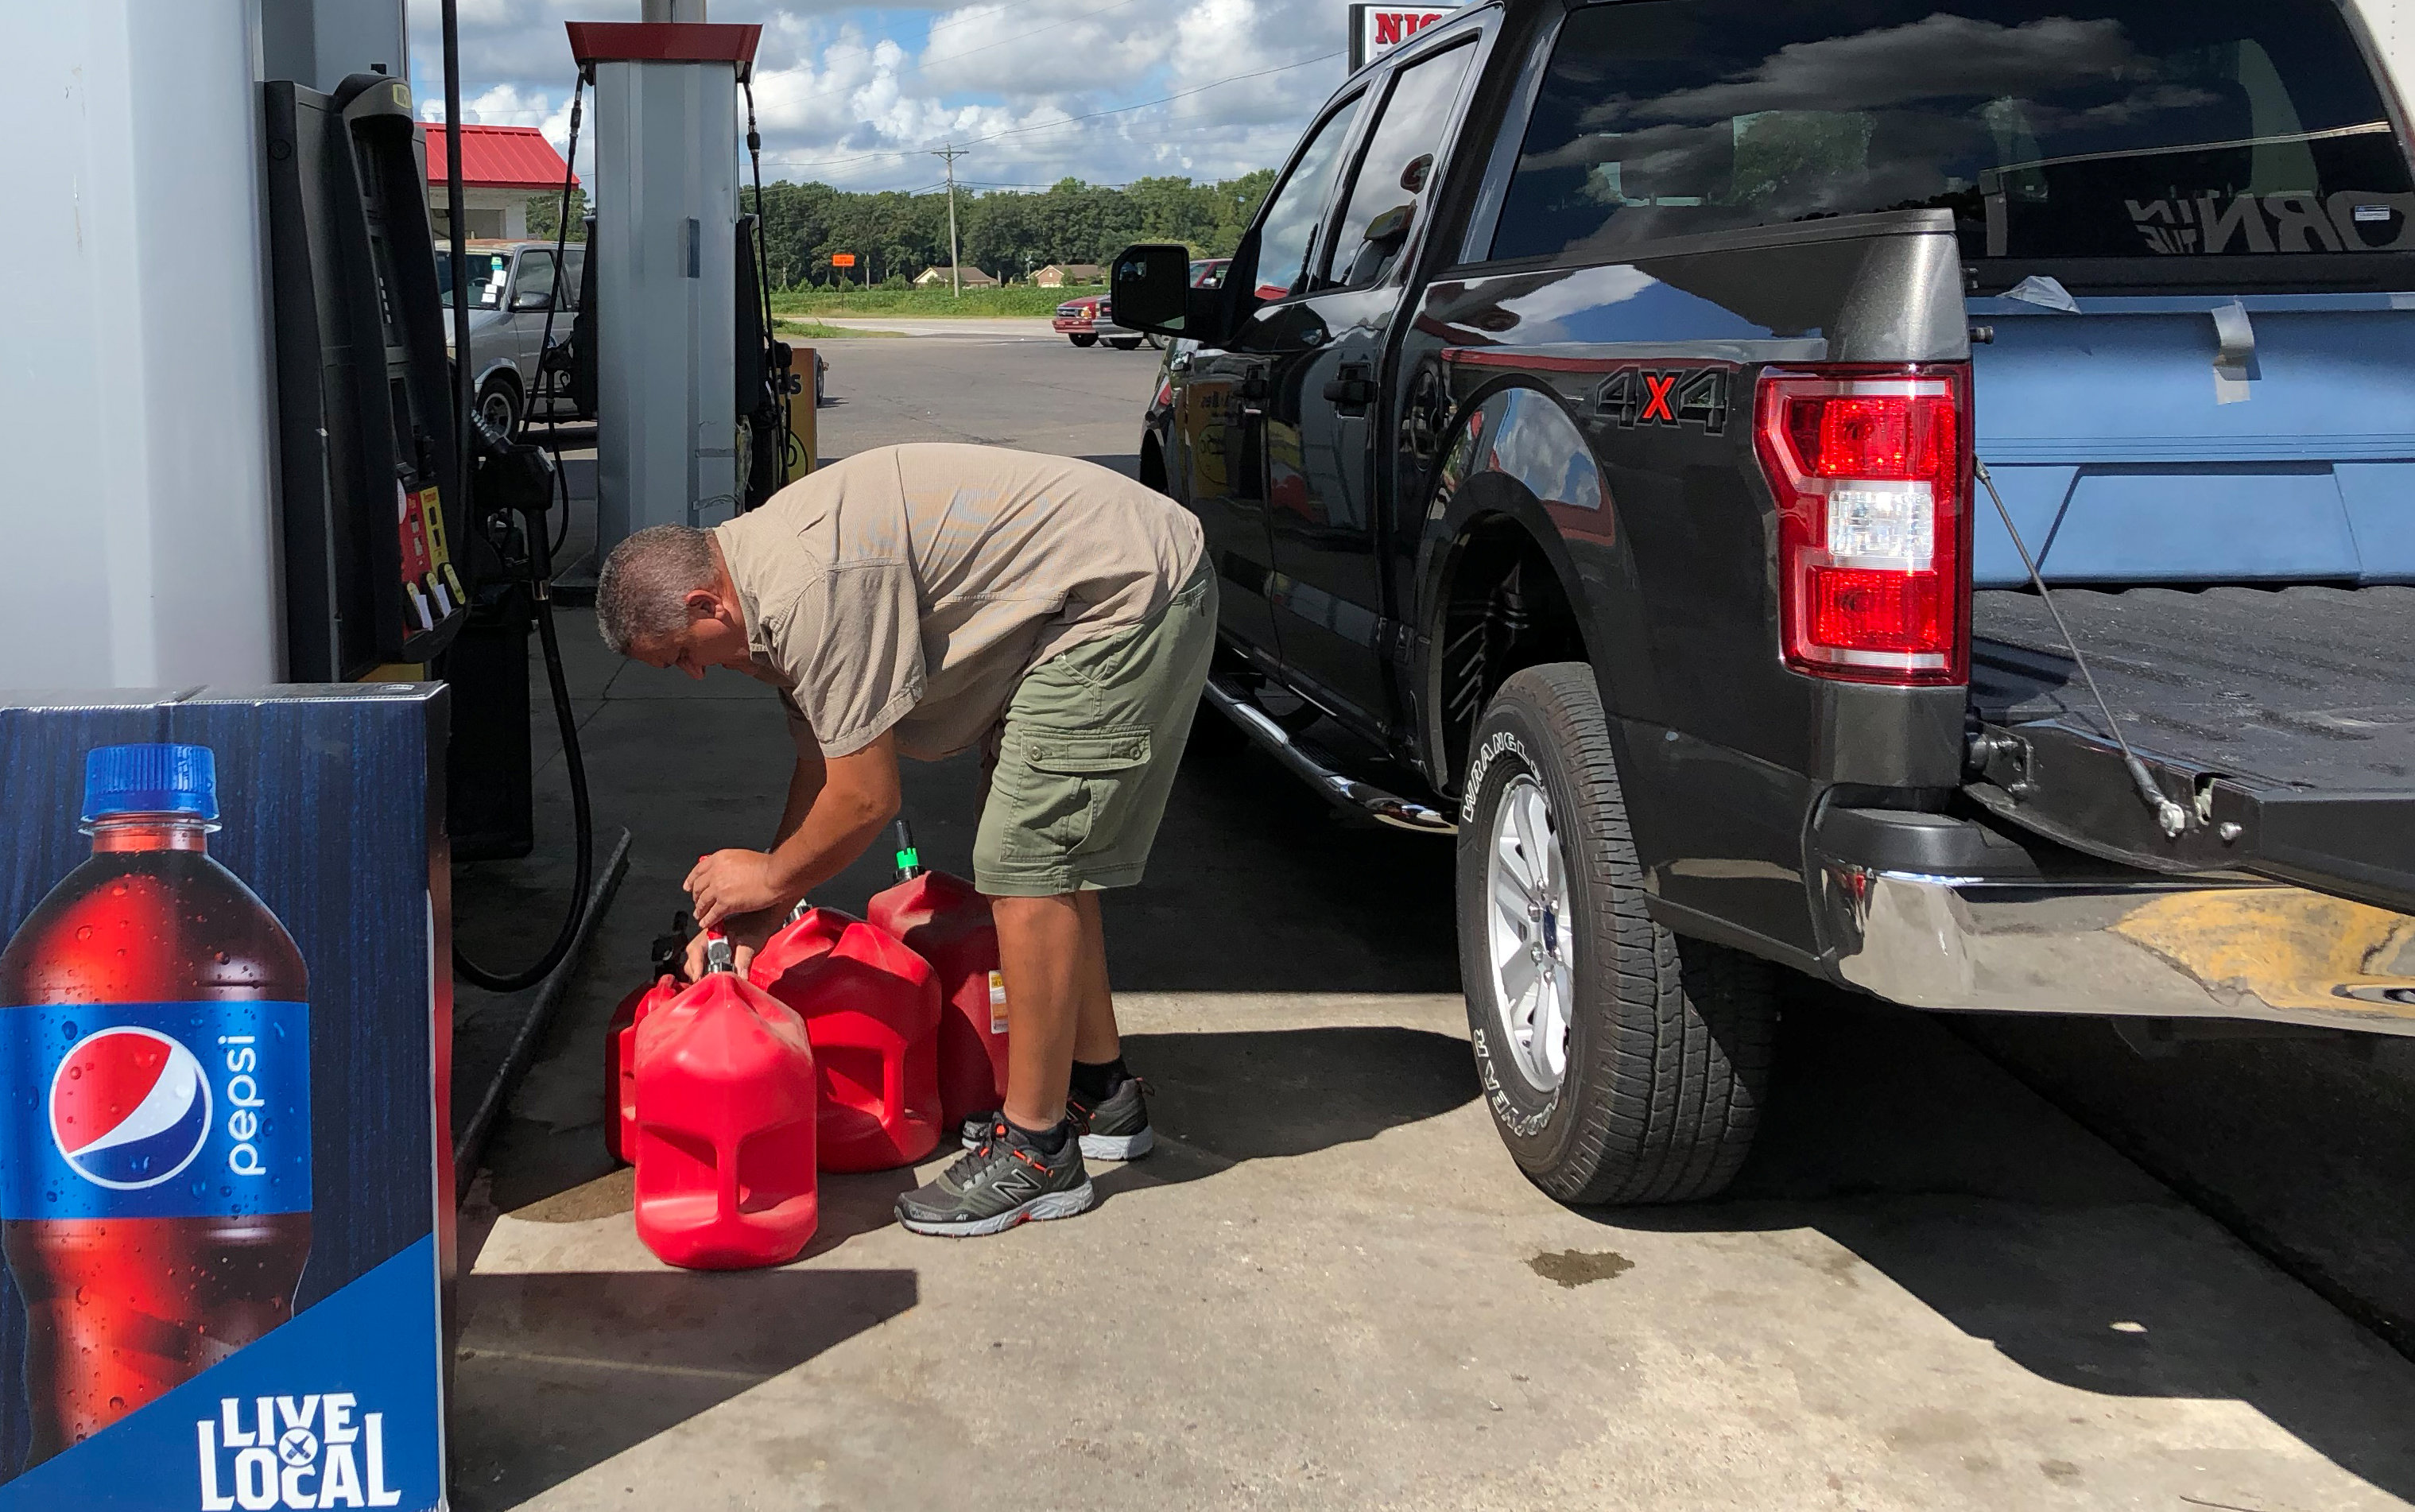 Trent Bullard fills gas containers for his generator ahead of Hurricane Florence in Pembroke, North Carolina, U.S., September 11, 2018. REUTERS/Anna Driver